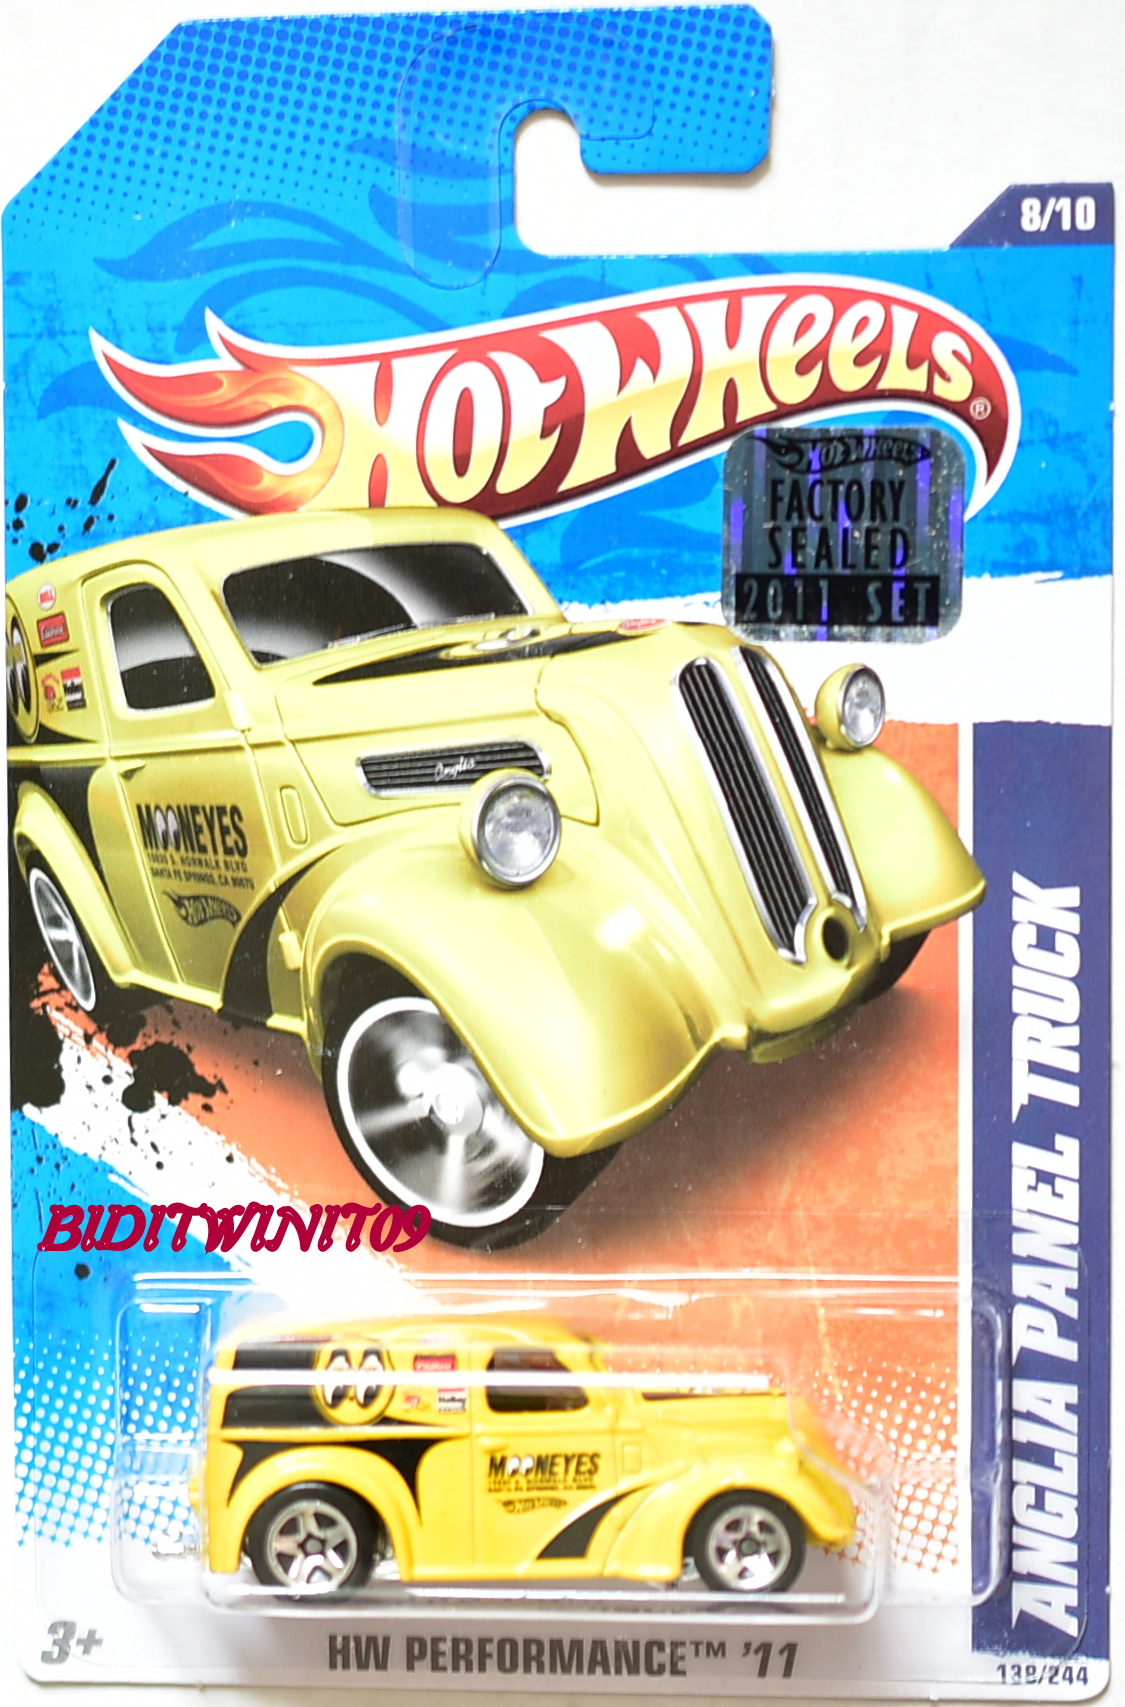 HOT WHEELS 2011 HW PERFORMANCE ANGLIA PANEL TRUCK YELLOW MOONEYES FACTORY SEALED